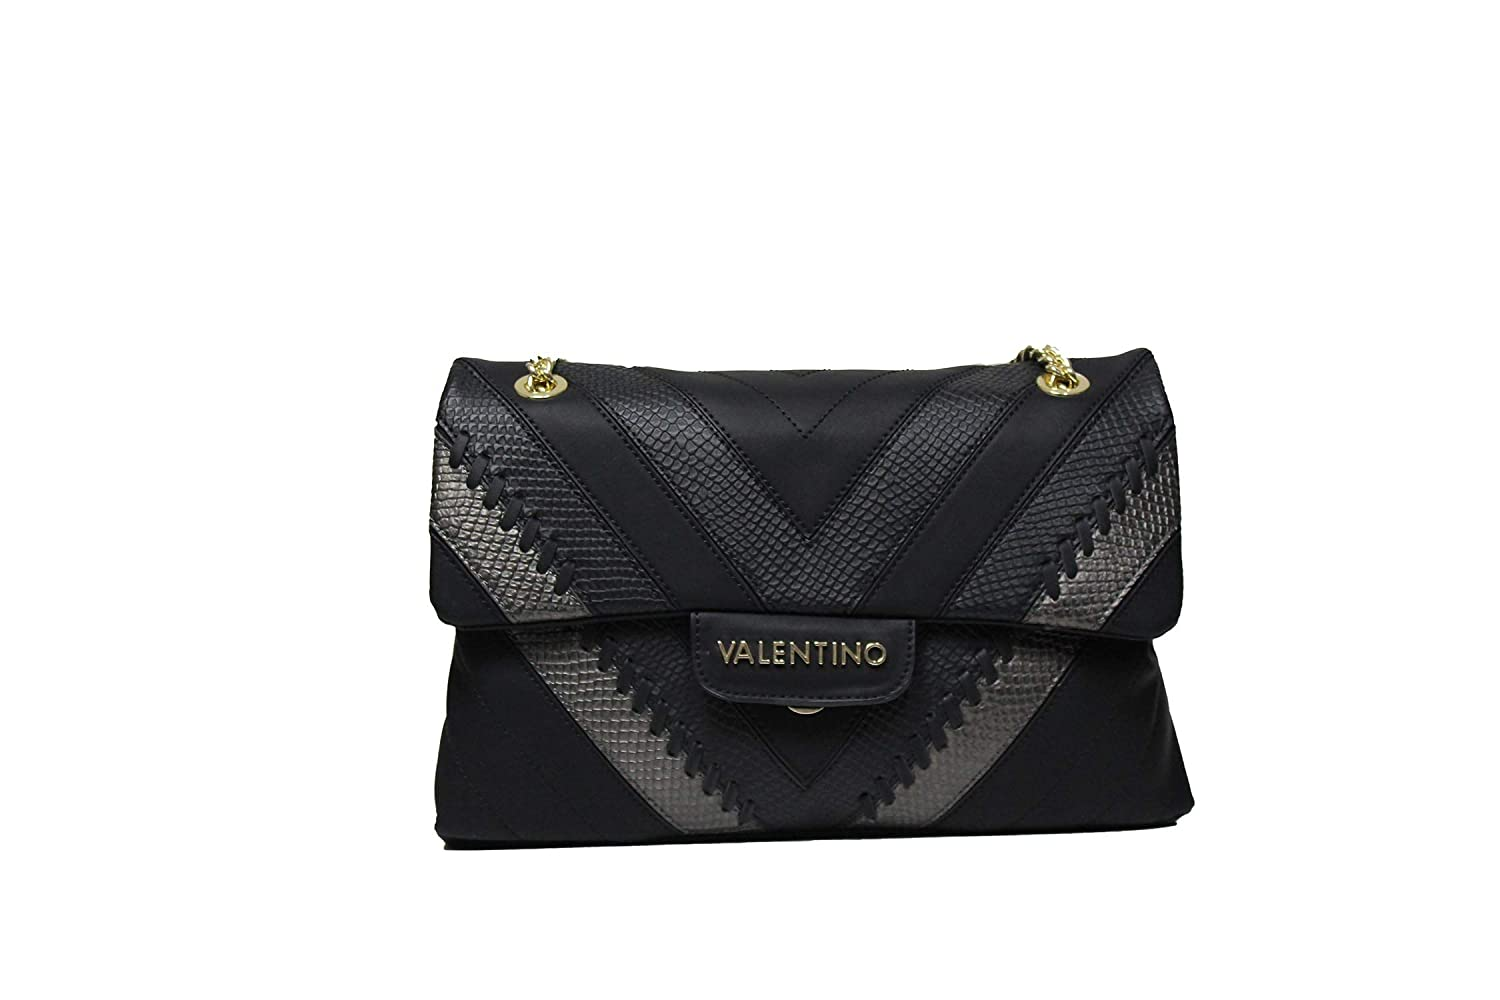 ff21a358d3b Valentino By Mario Valentino Large Twilight Black Textured Cross-Body Bag  Black Leather: Amazon.co.uk: Shoes & Bags